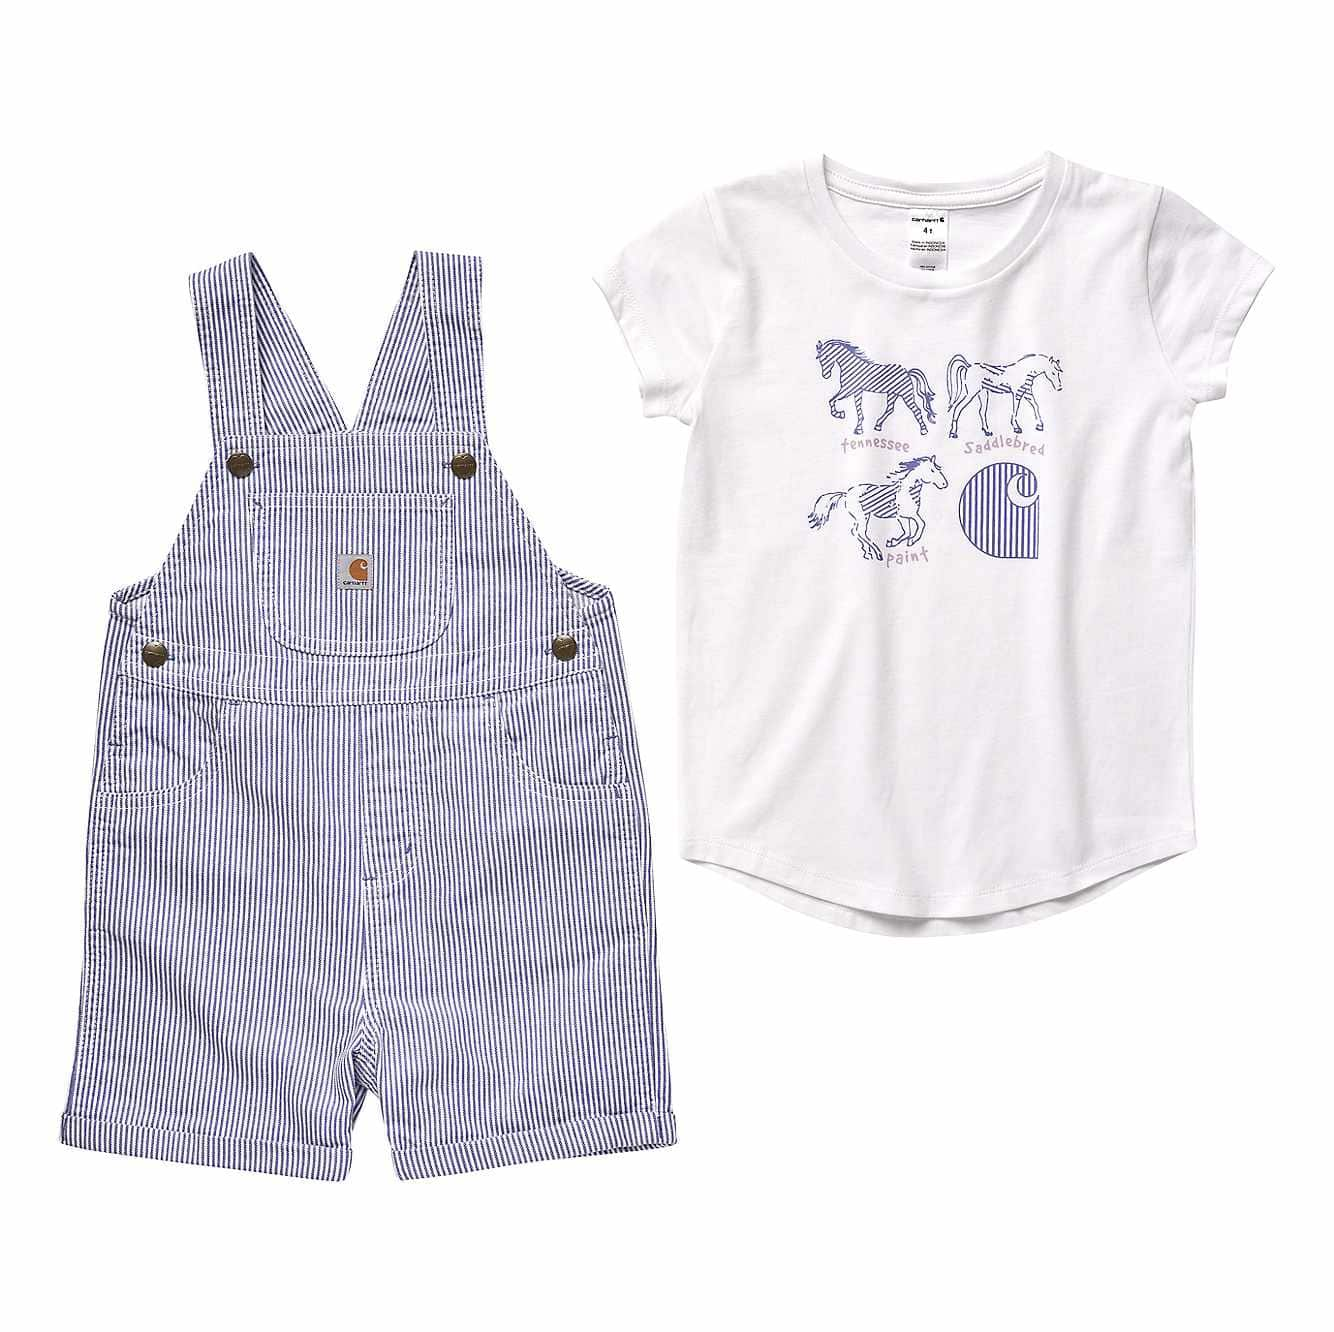 Picture of Ticking Stripe Shortall Set in Lolite